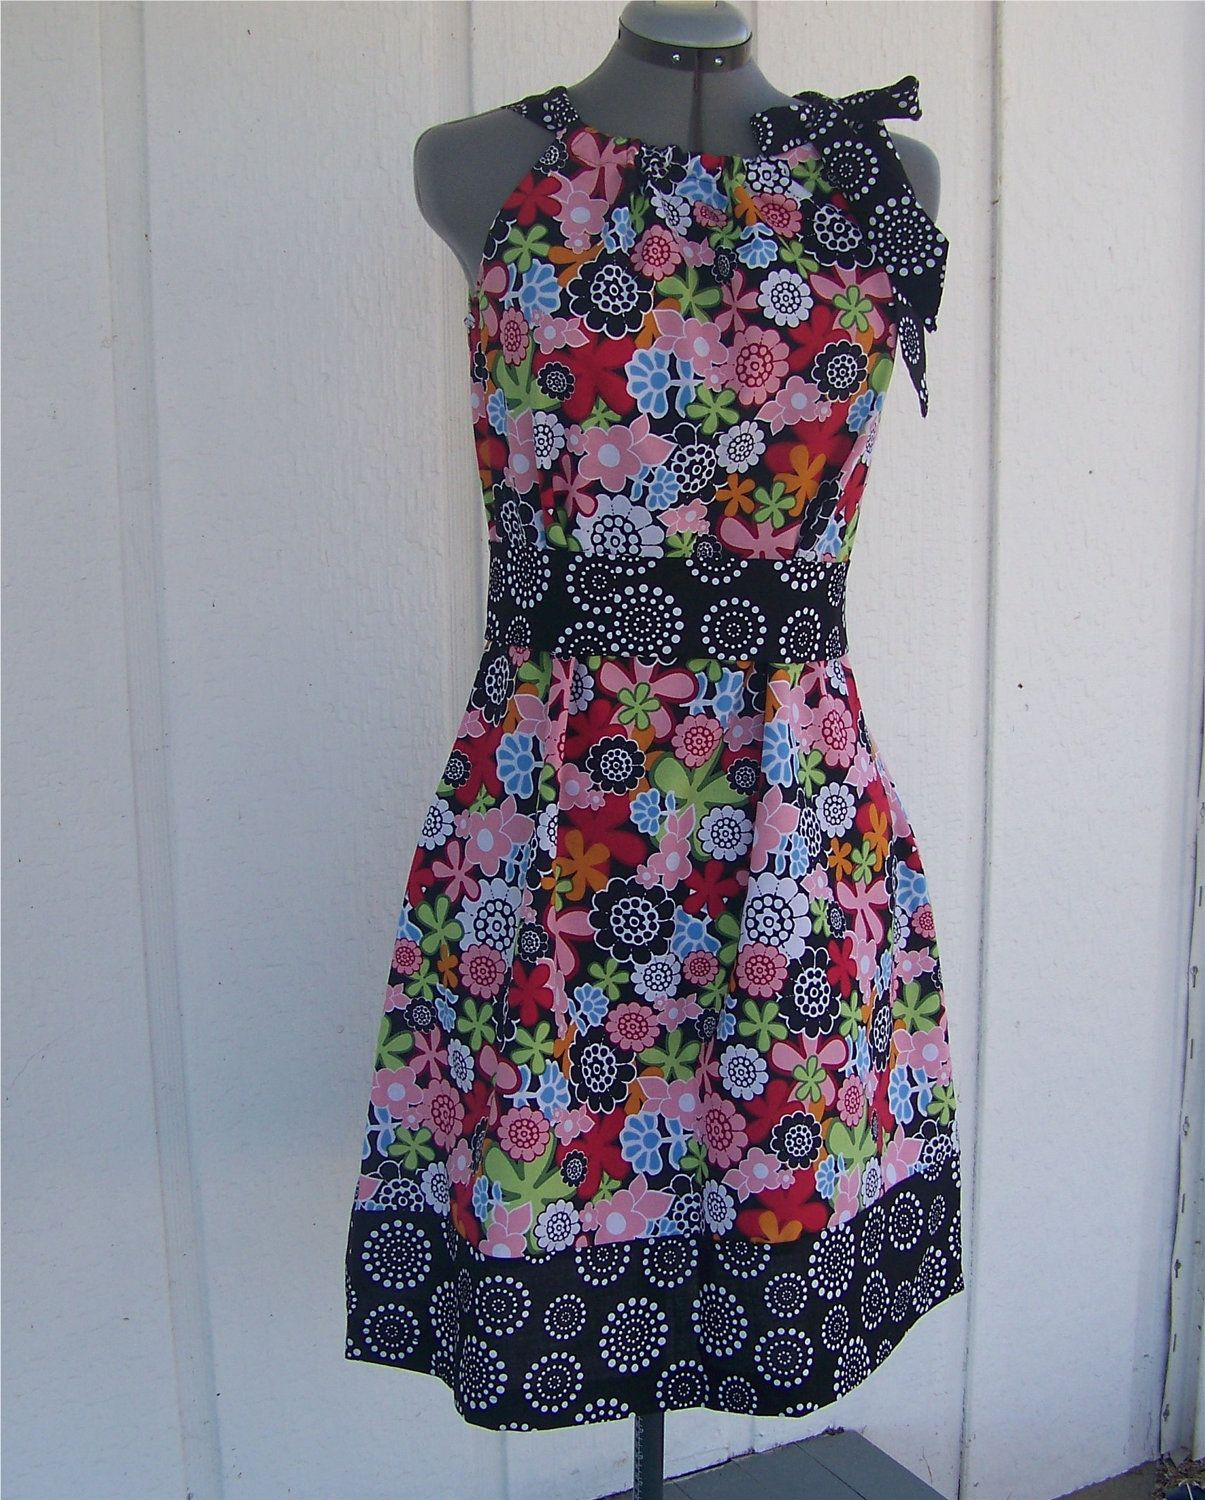 Diy Pillowcase Dress Adults: Adult Size PillowCase Dress   Now that I have a sewing machine    ,